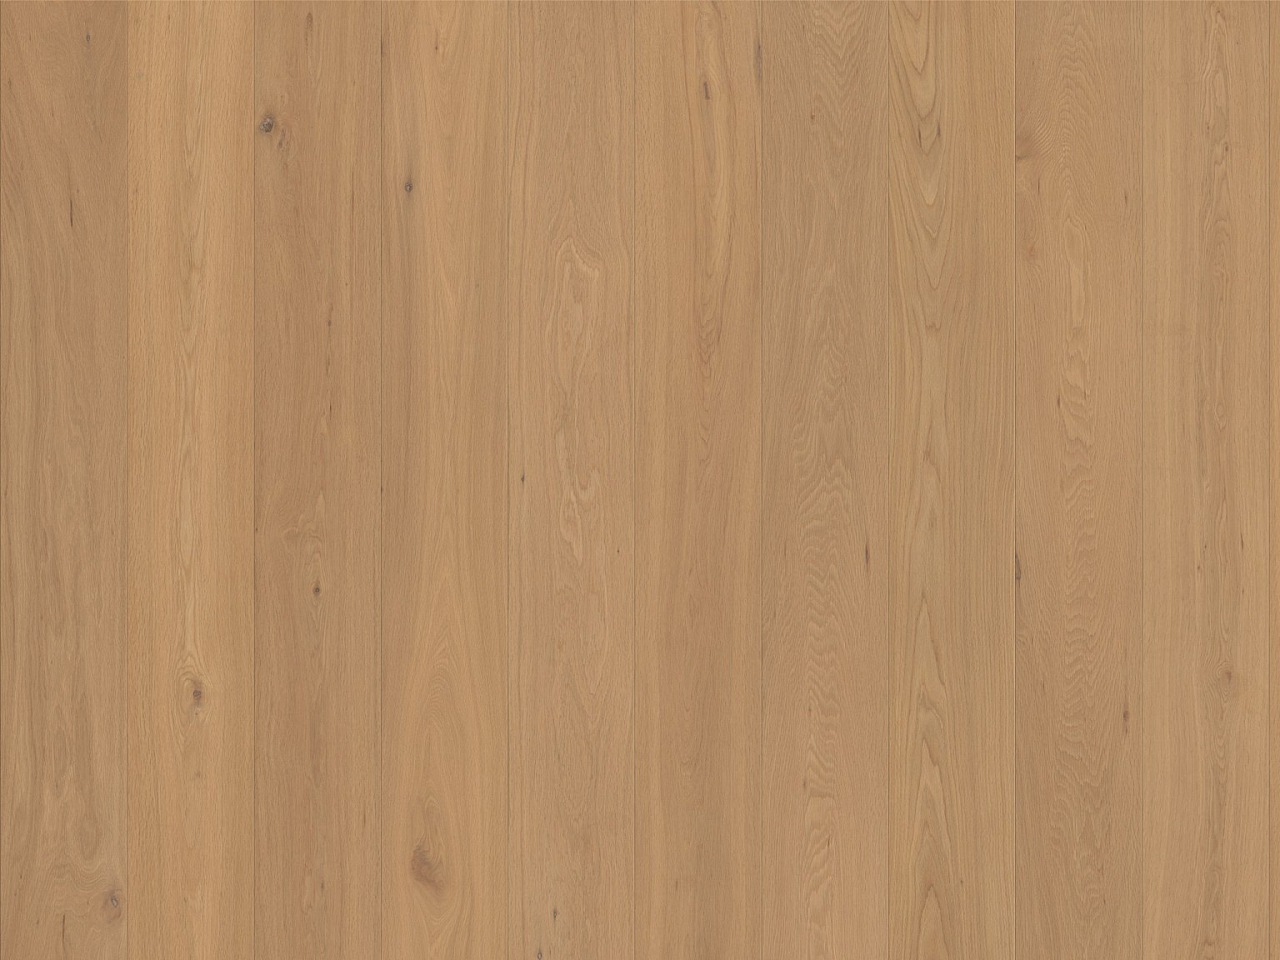 Kork Amora Wood – Domingo Oak lang 4V, 8F4001